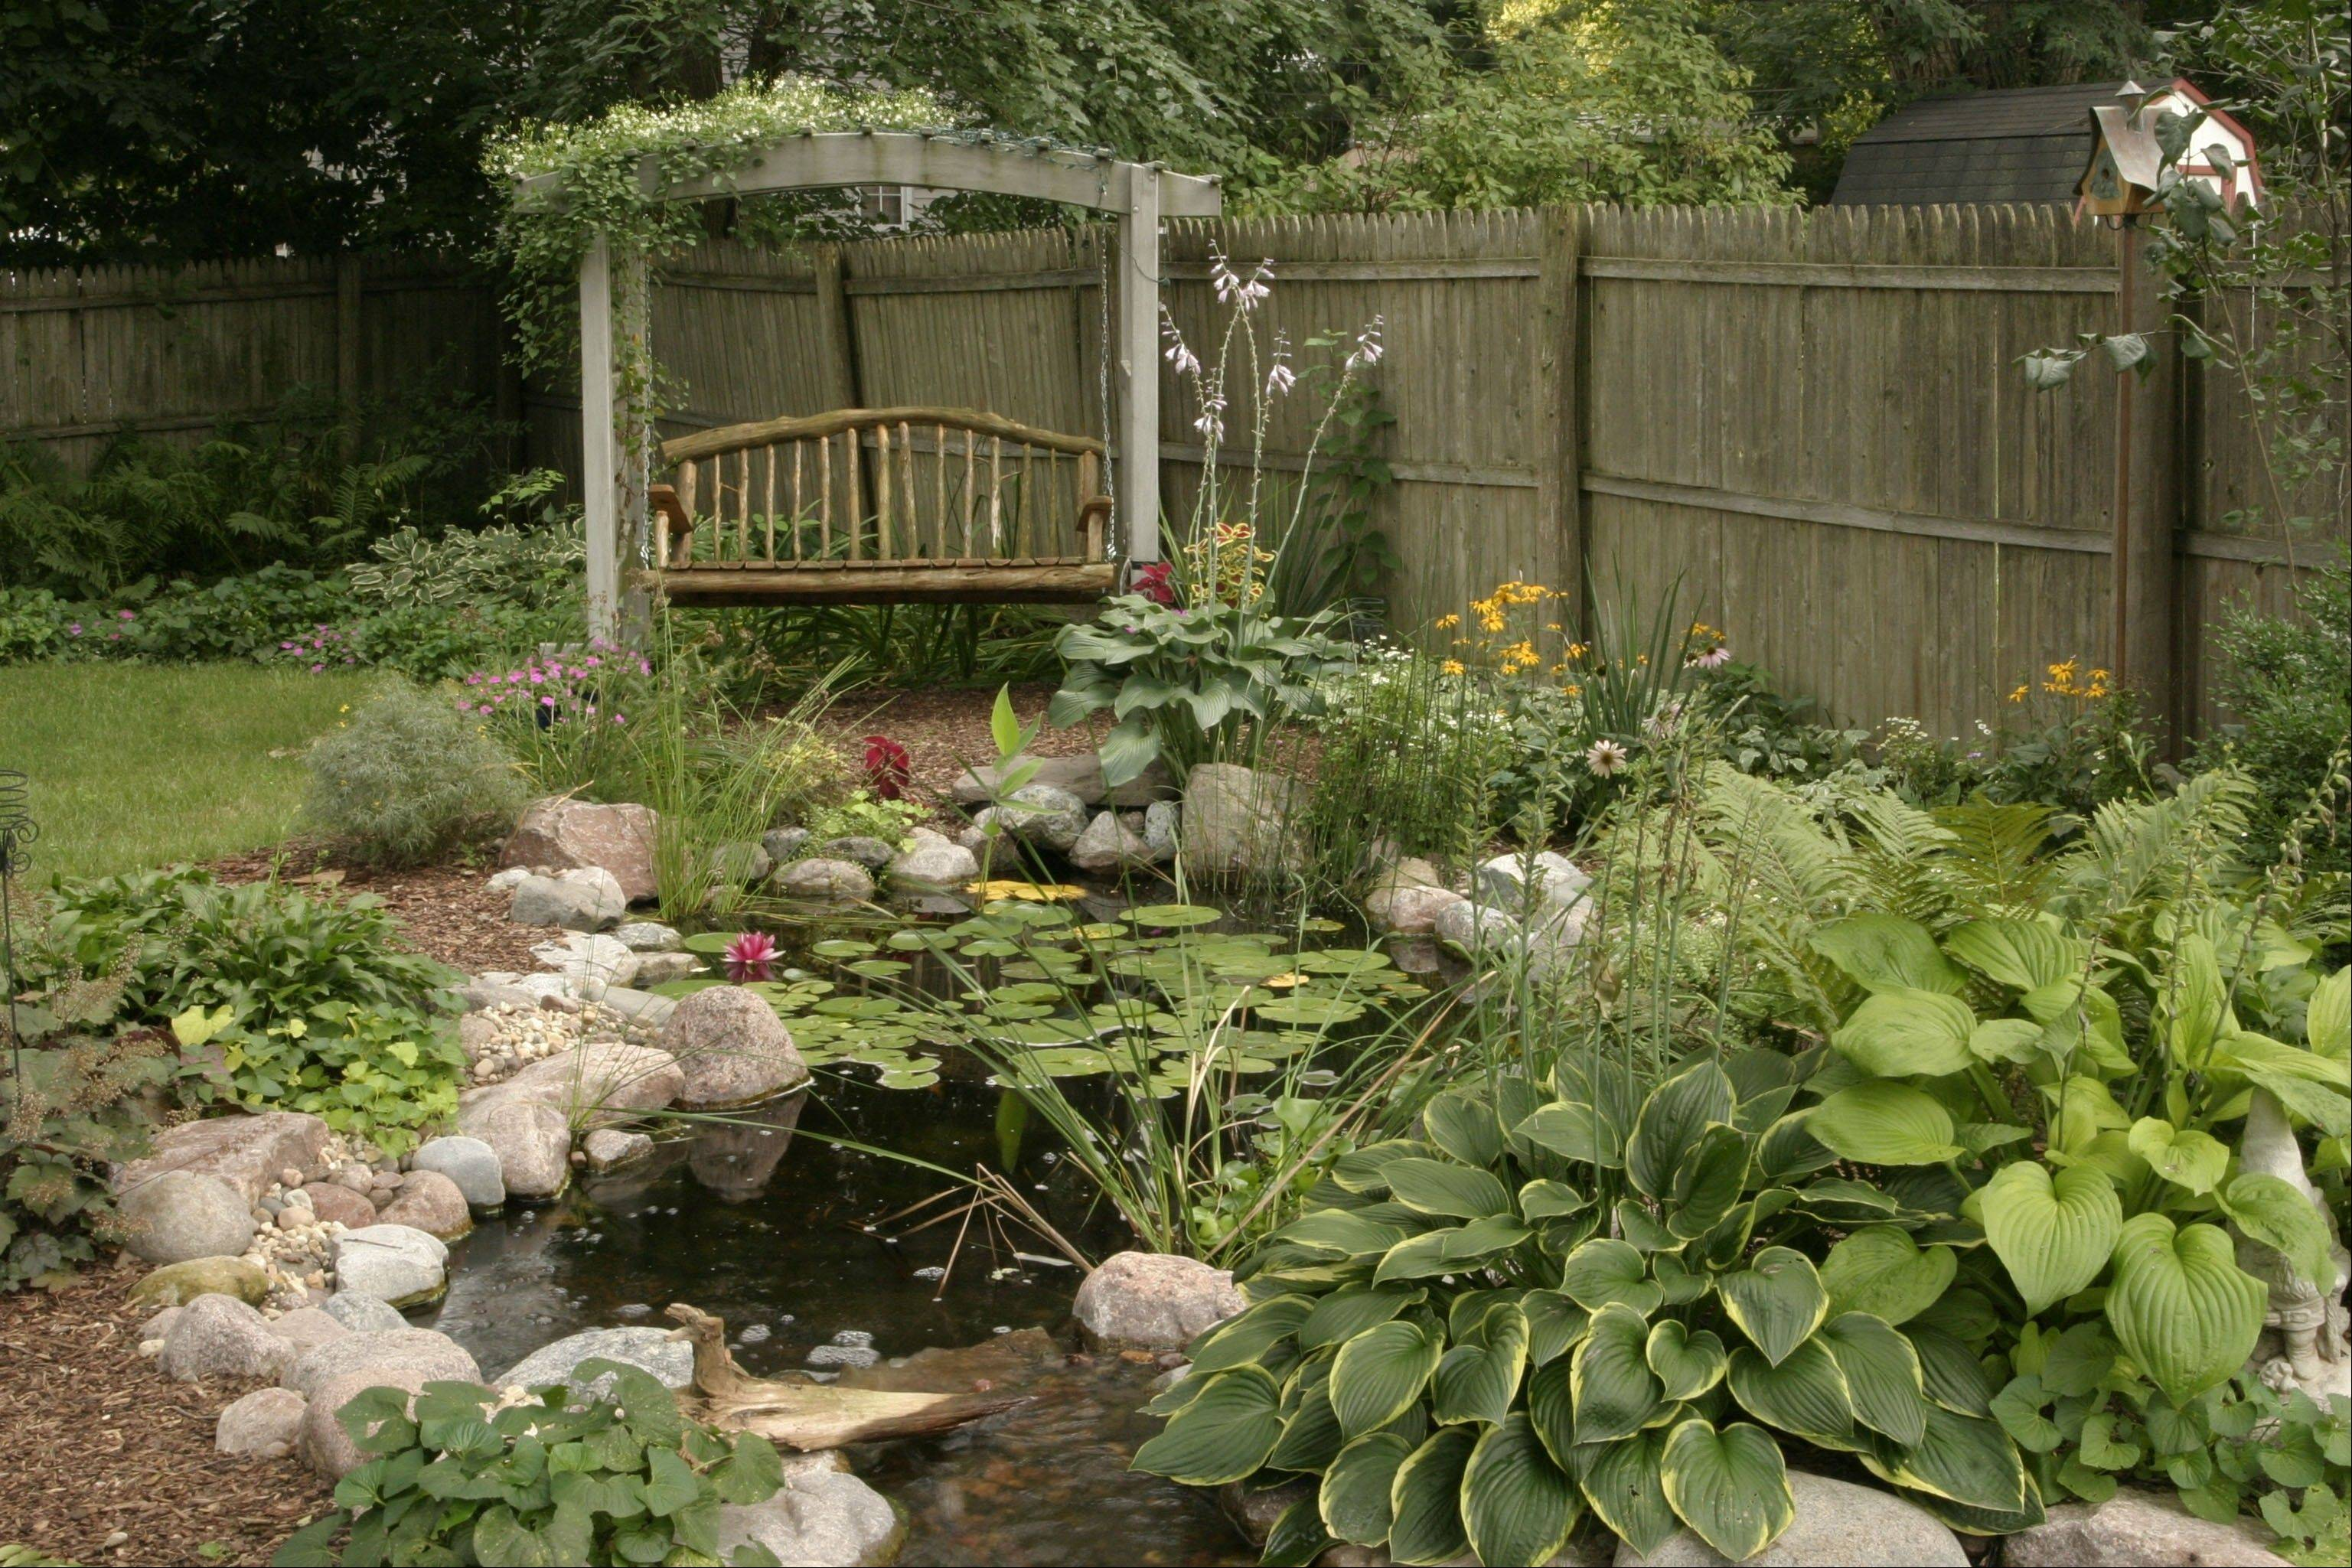 Having a water feature in your yard helps your children connect with nature.